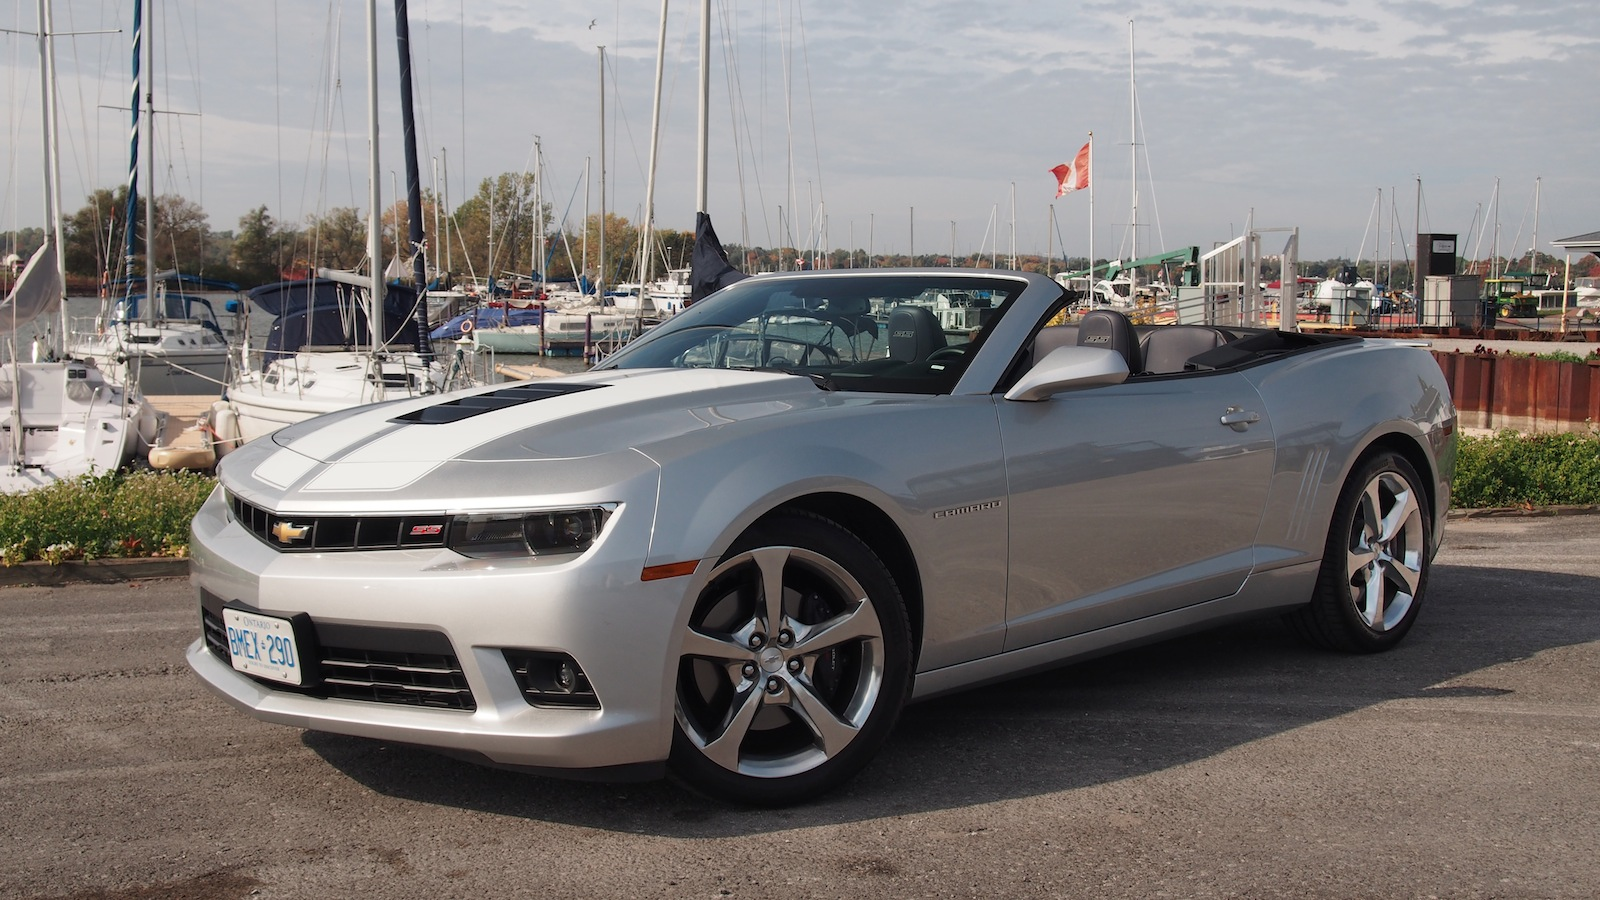 BMW 428I Convertible >> Review: 2015 Chevrolet Camaro SS Convertible | Canadian Auto Review